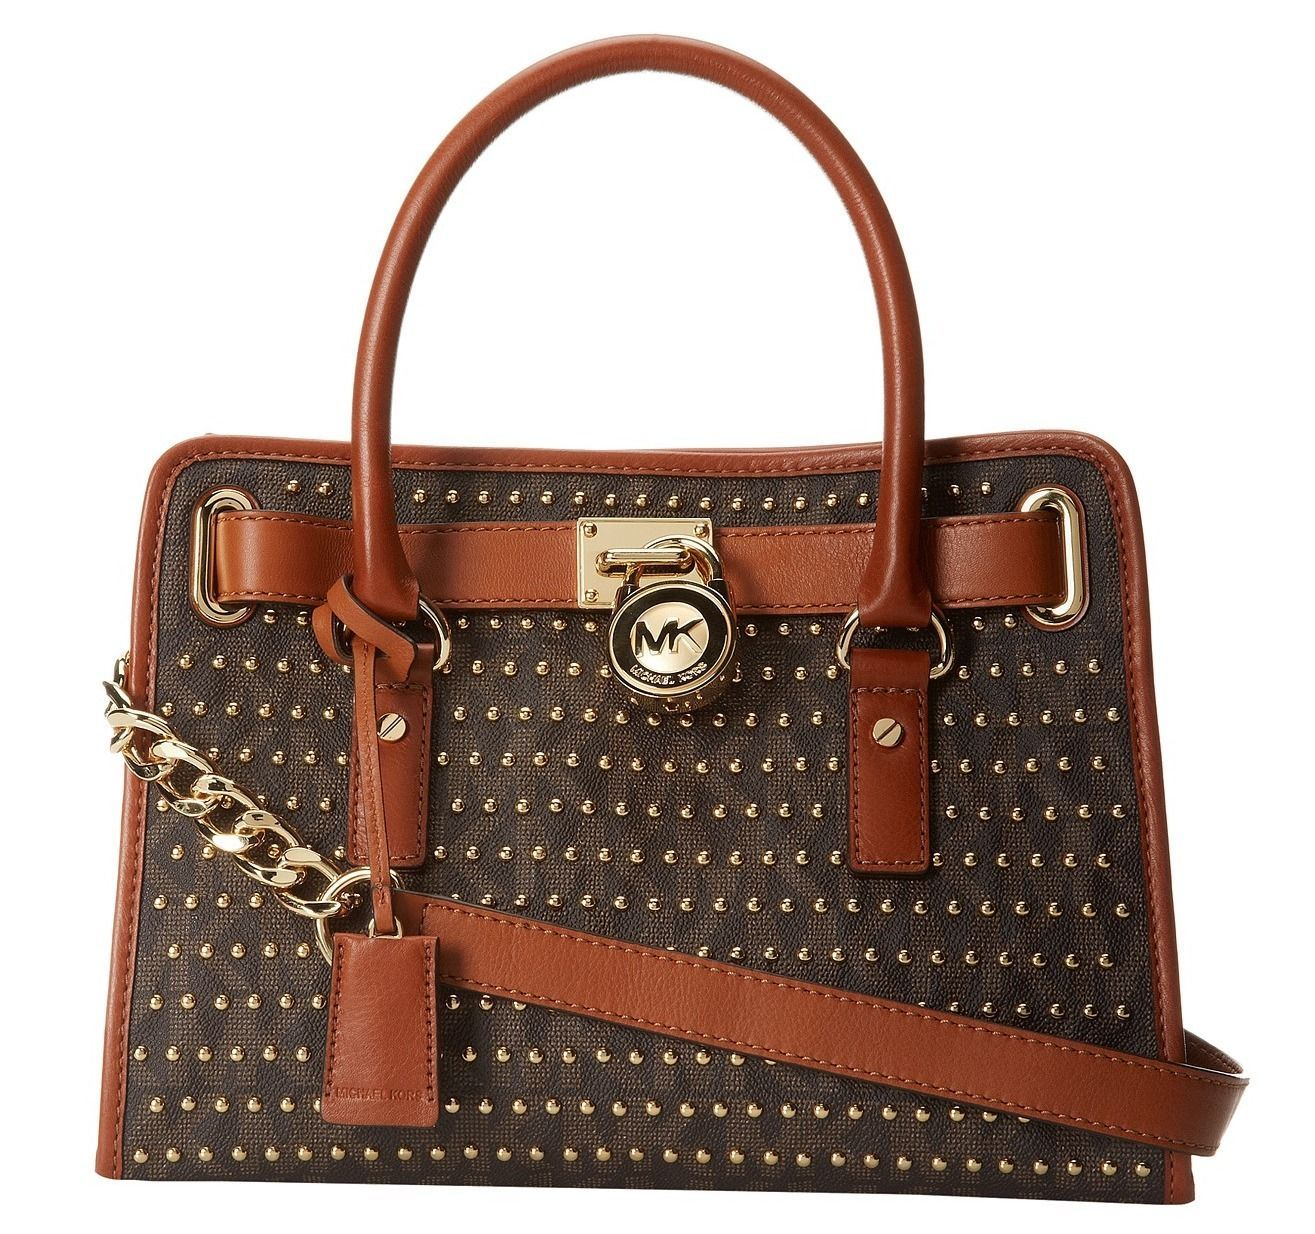 NWT Michael Kors Hamilton Studded East West MK Signature PVC Satchel MSRP $398